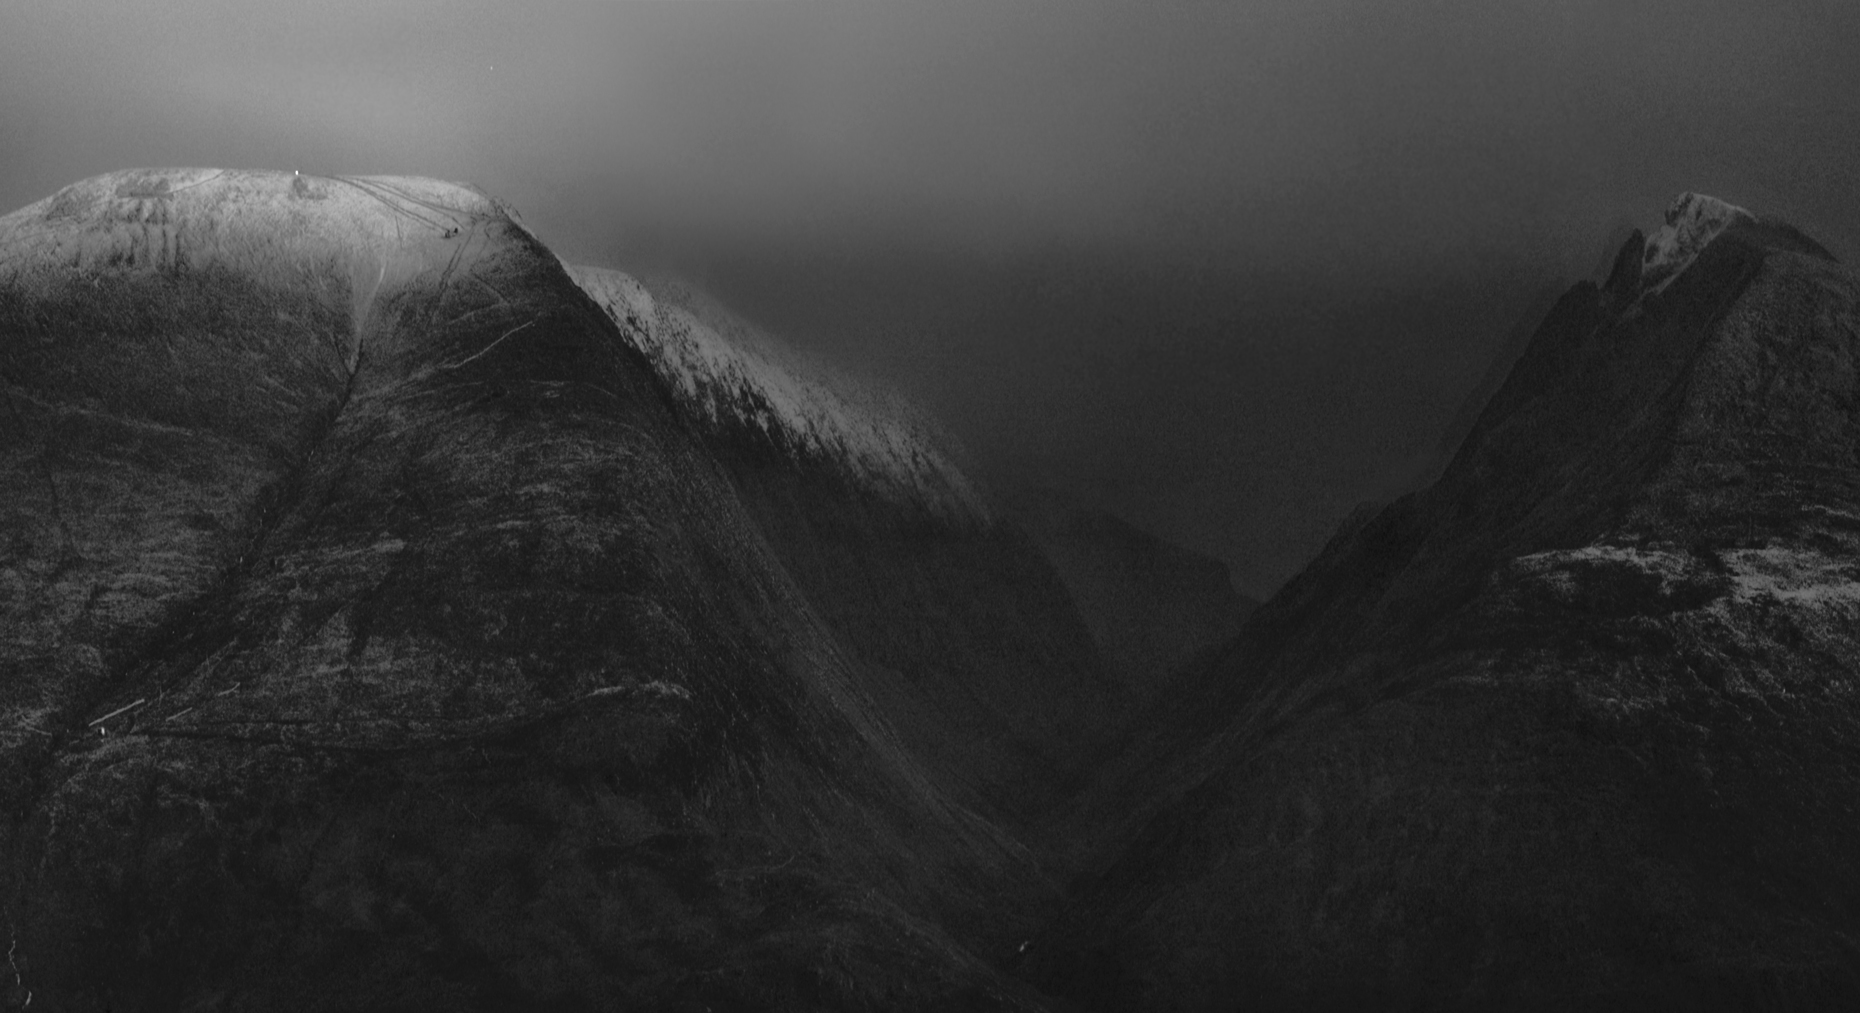 Ben Nevis and Aanoch Mor - detail from previous image